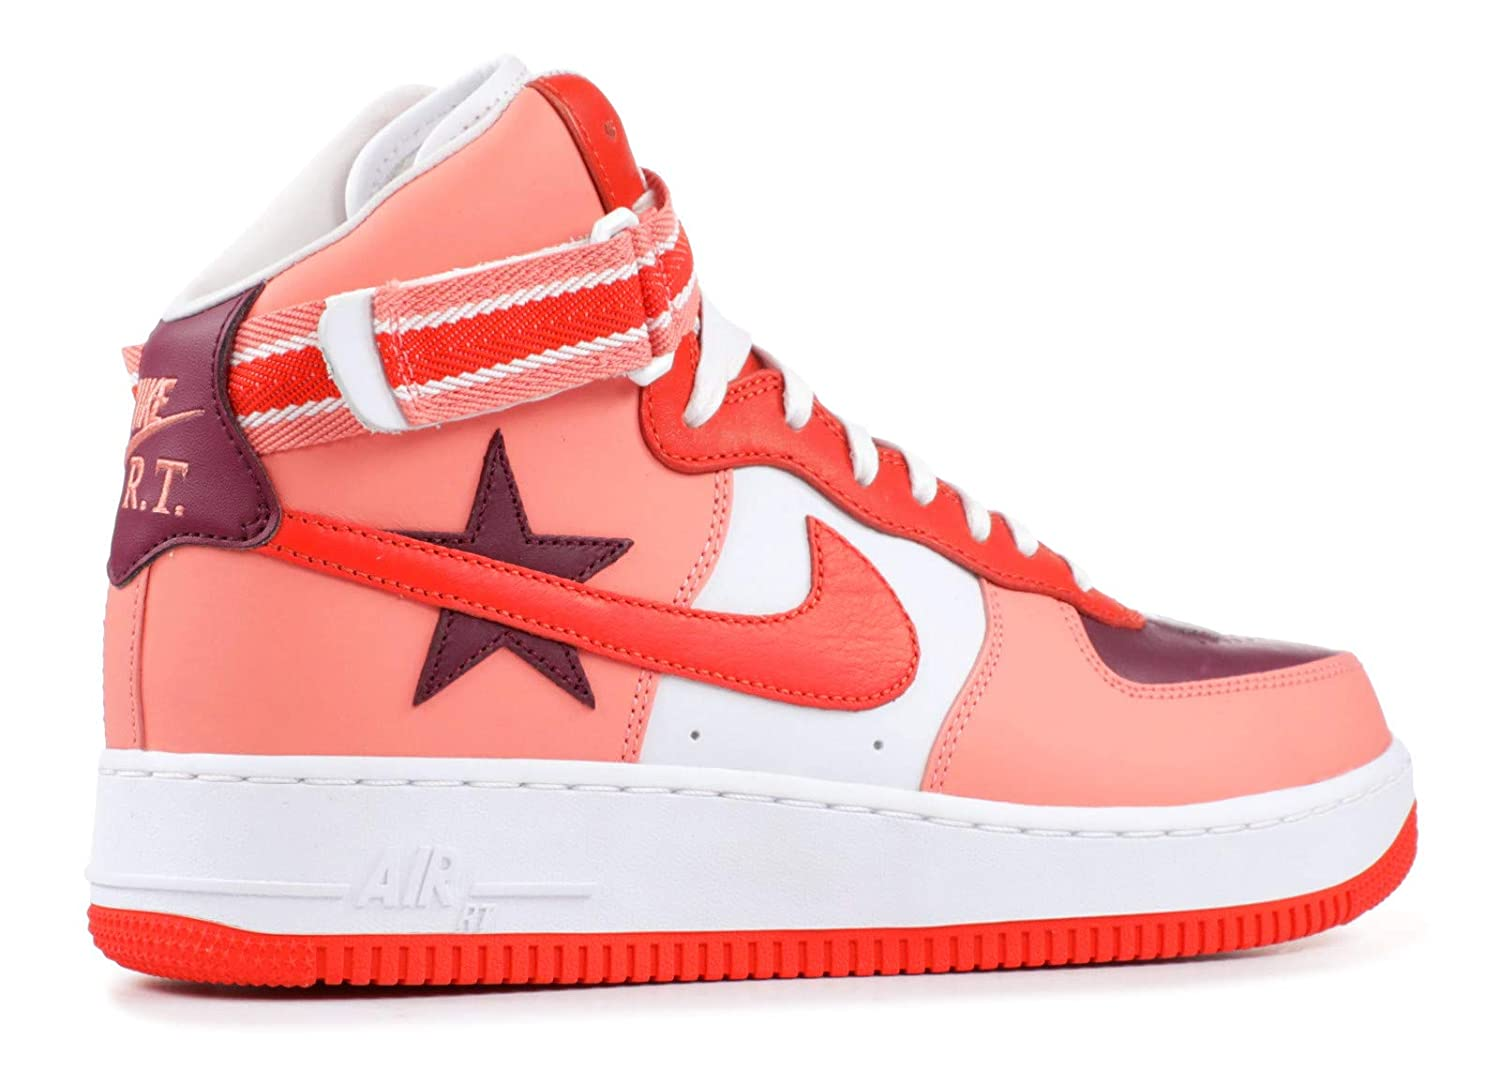 promo code 2b7ff 98c27 Amazon.com   NIKE Air Force 1 Hi Rt  Riccardo Tisci All-Star  - Aq3366-601  - Size 9   Basketball